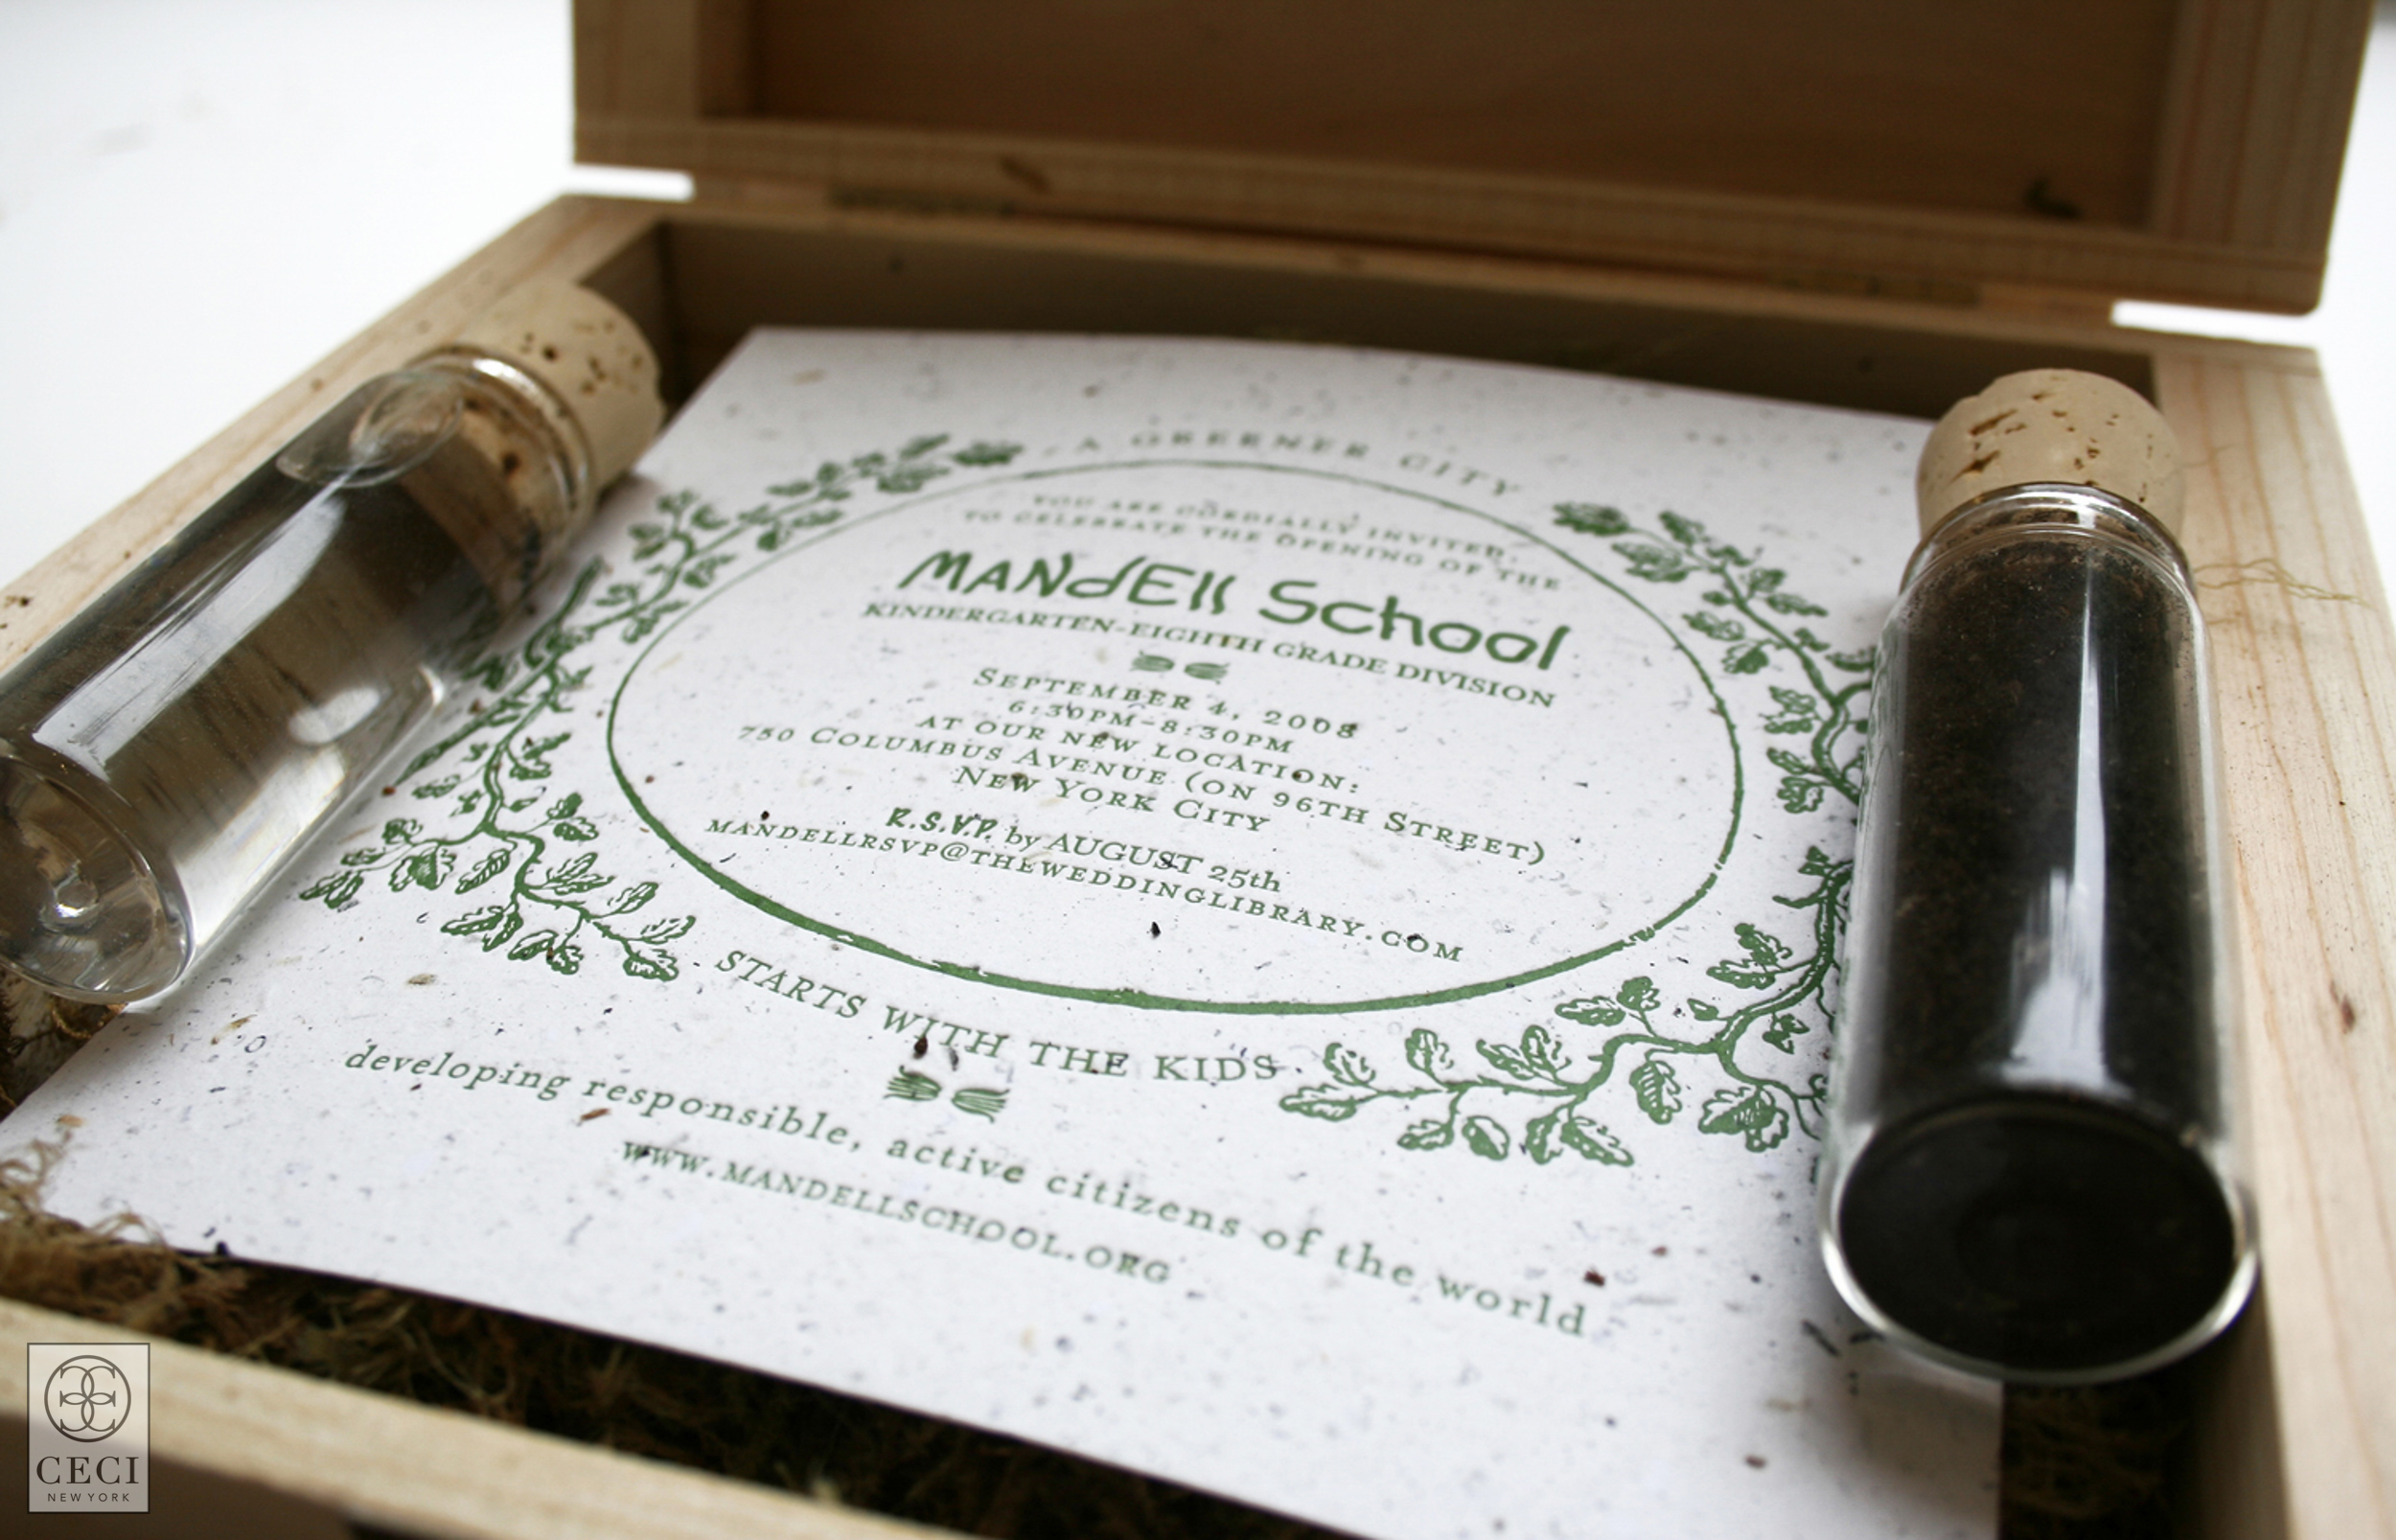 ceci_new_york_event_invitation_the_mandell_school_new_york_city_opening_natural_sustainable_eco_friendly_design-4.jpg